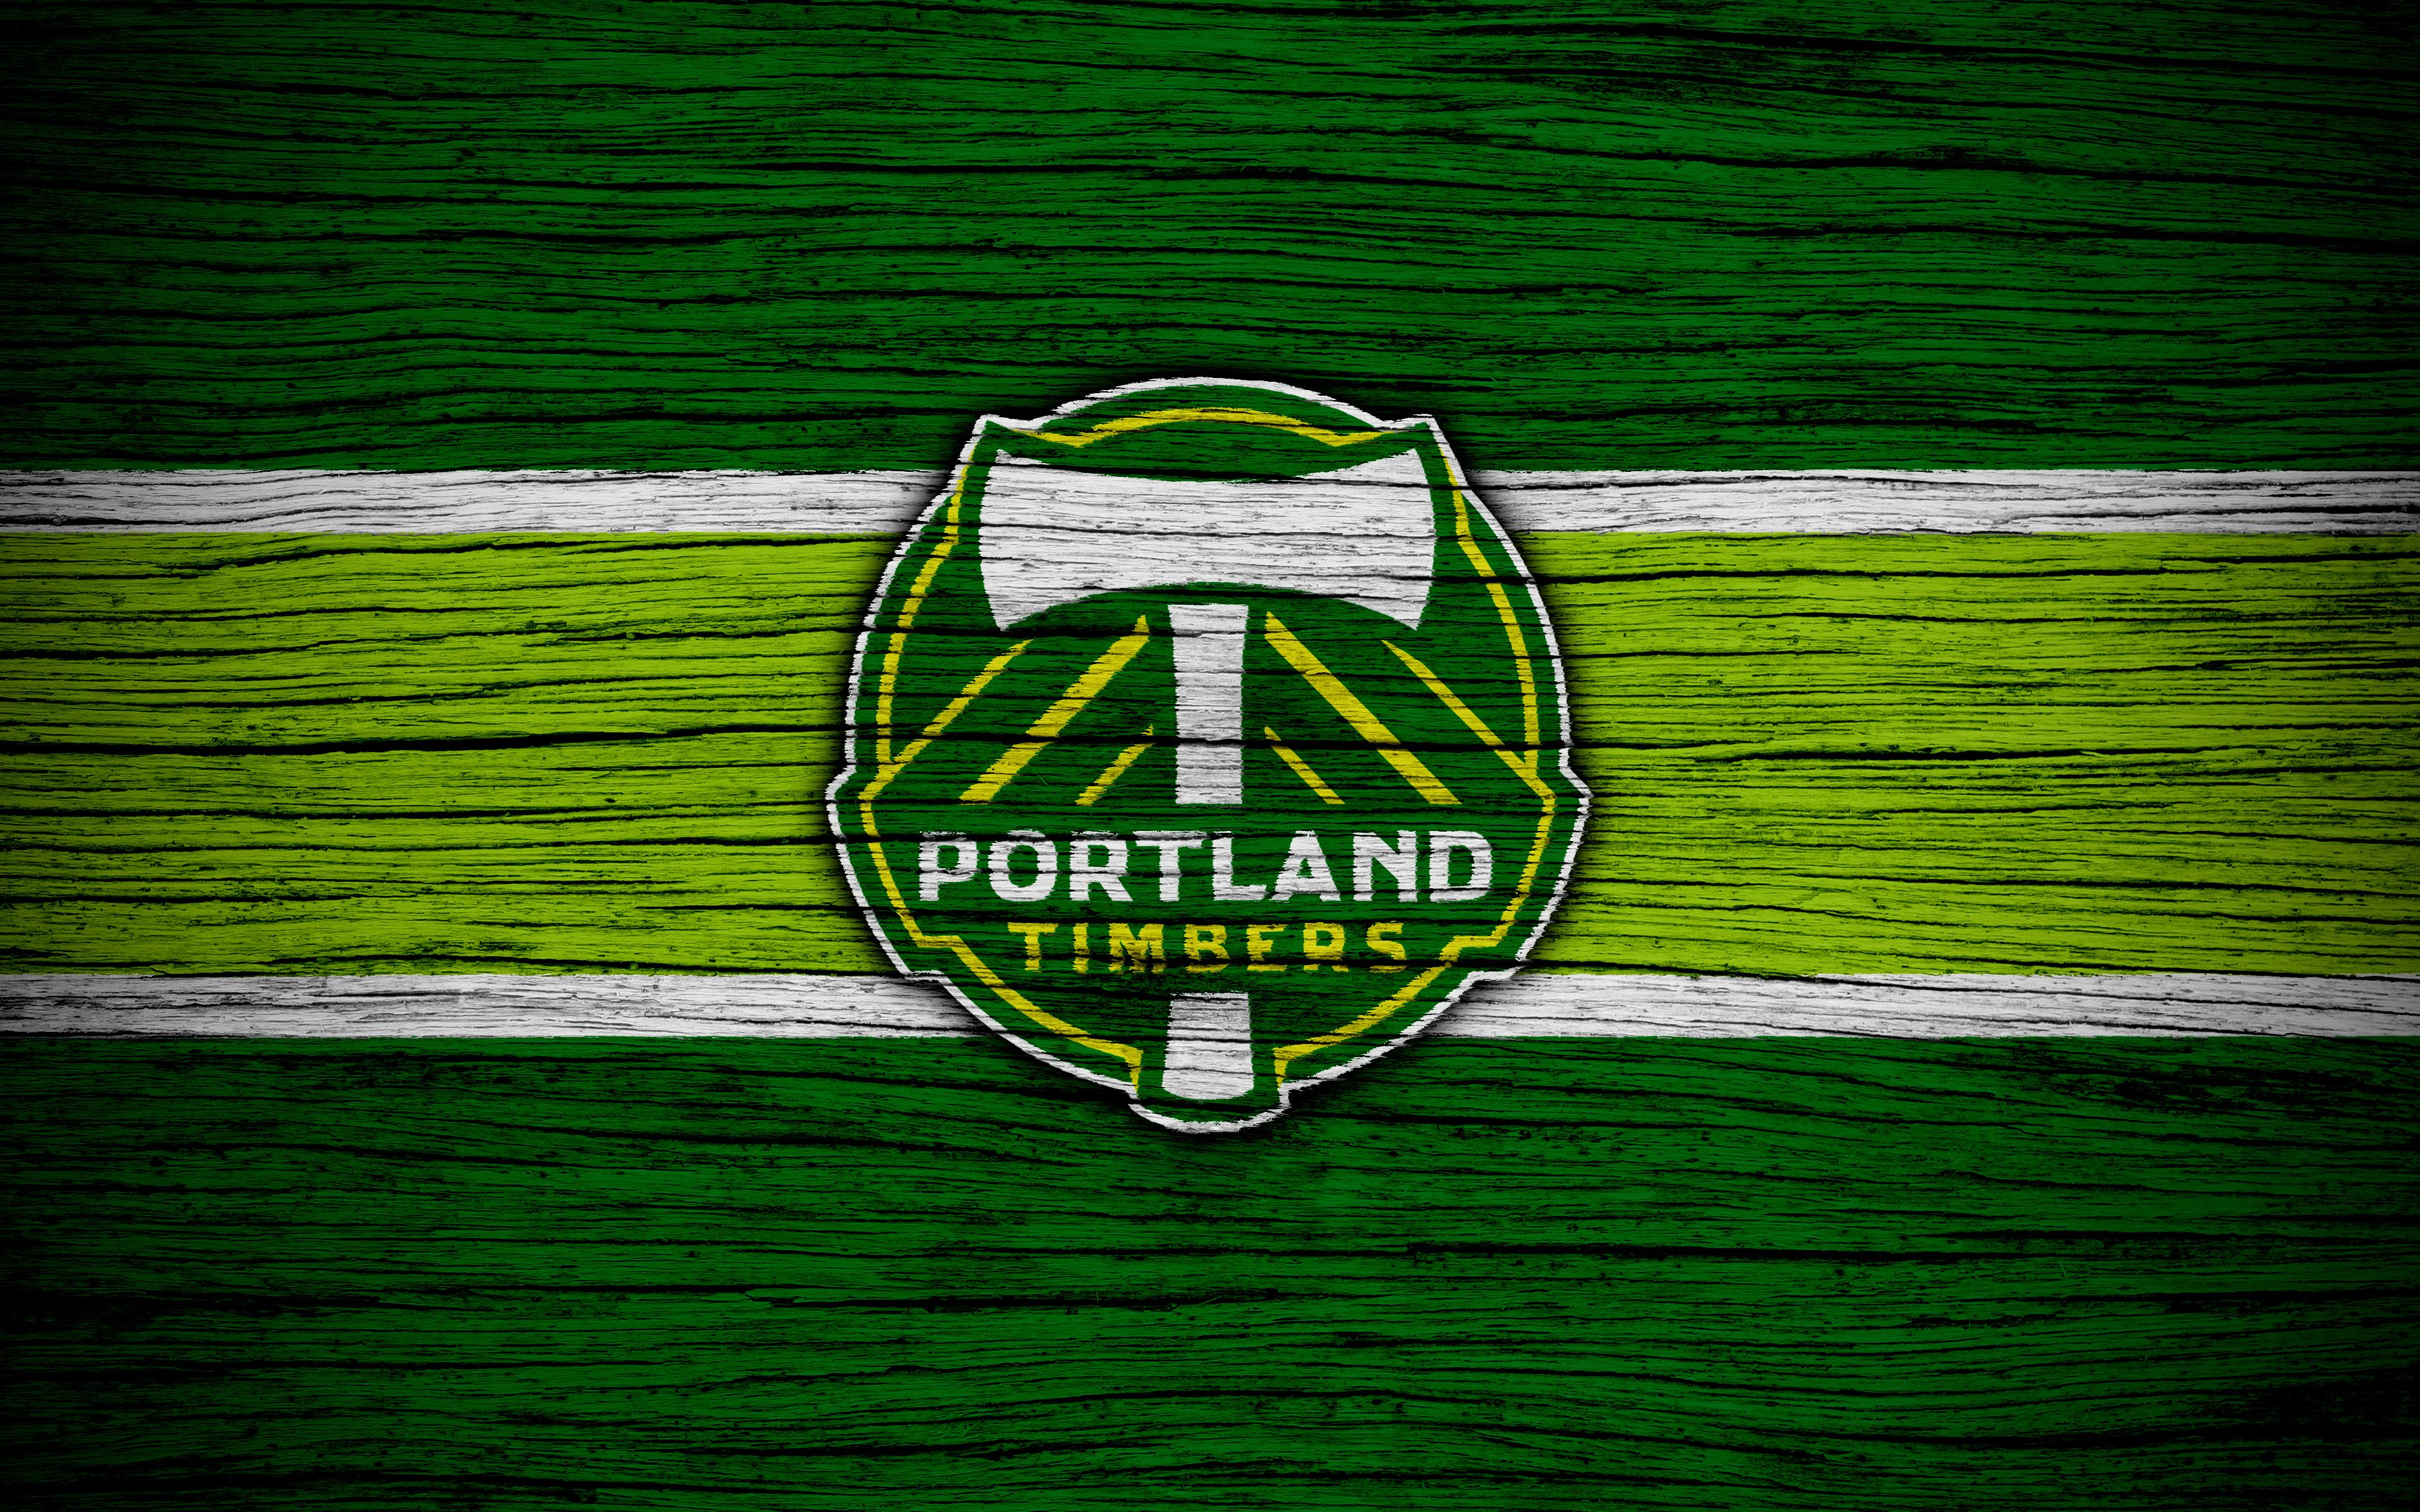 Emblem, Logo, MLS, Portland Timbers, Soccer wallpapers and backgrounds